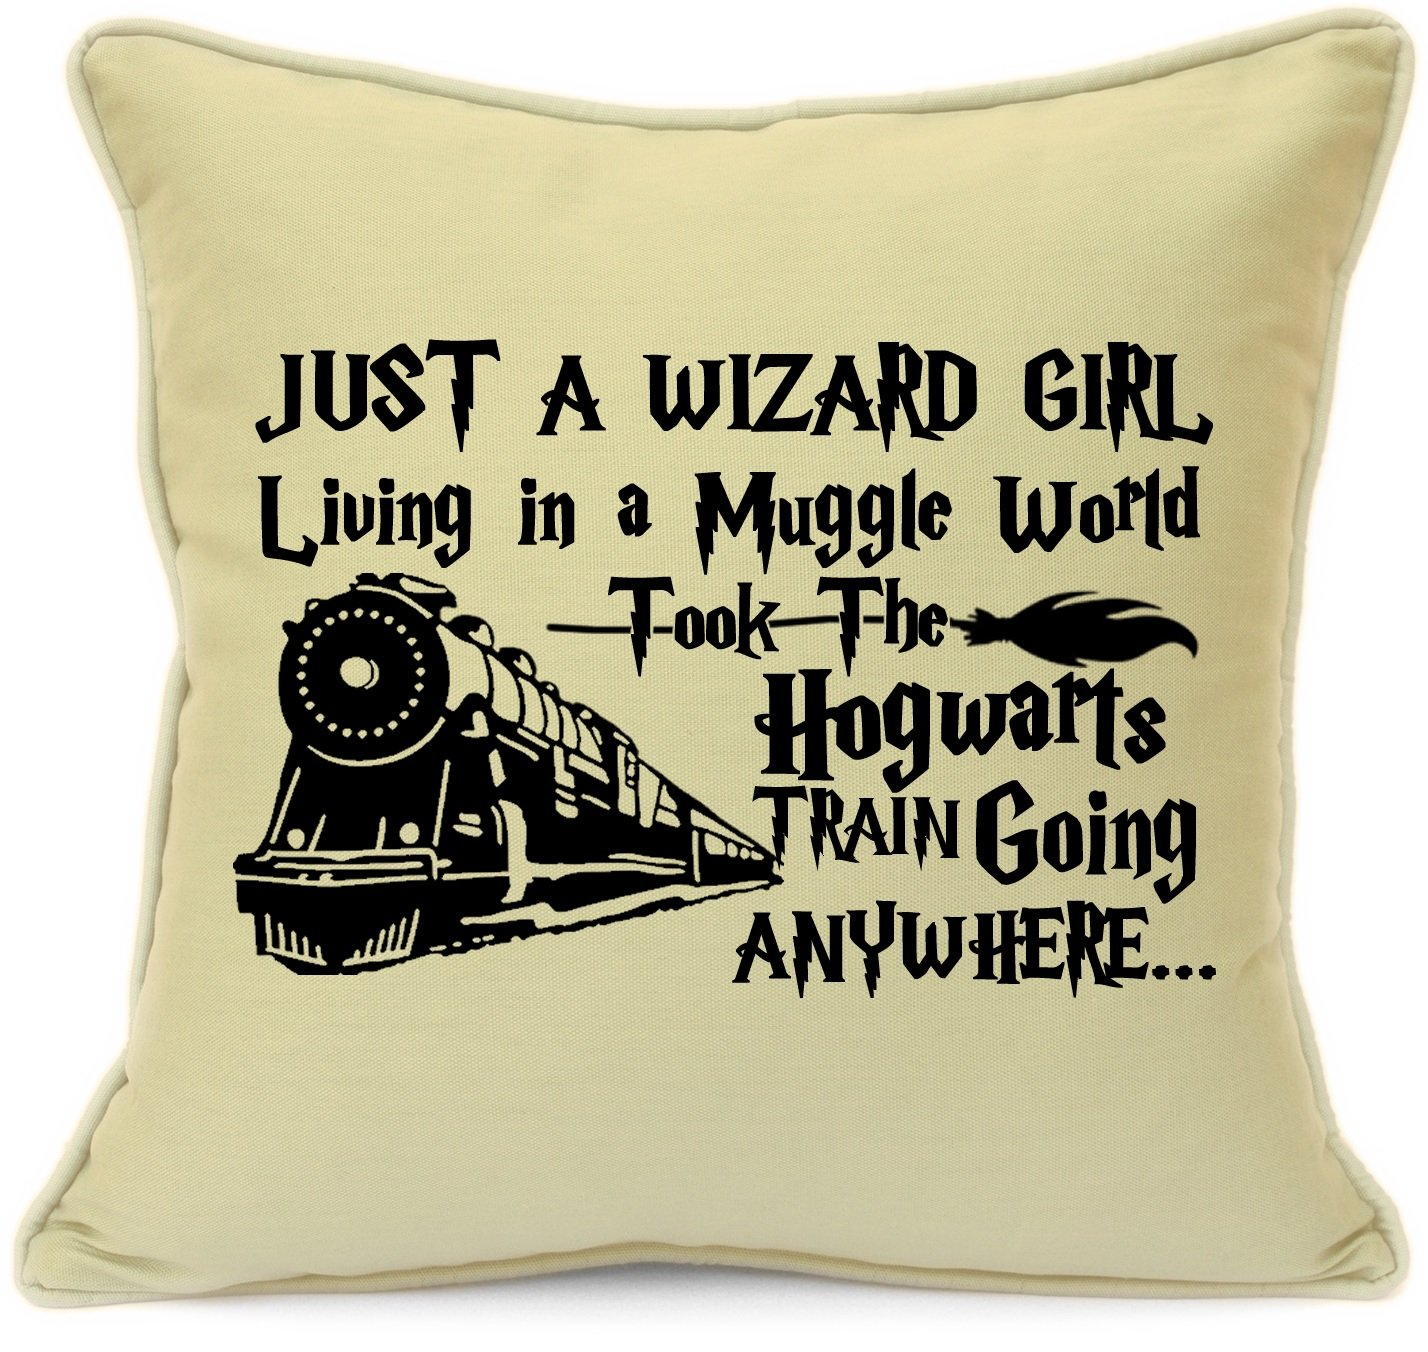 18 x 18 Pillow Cover Christmas Gift Harry Potter Deathly Hallows Pillow Cover